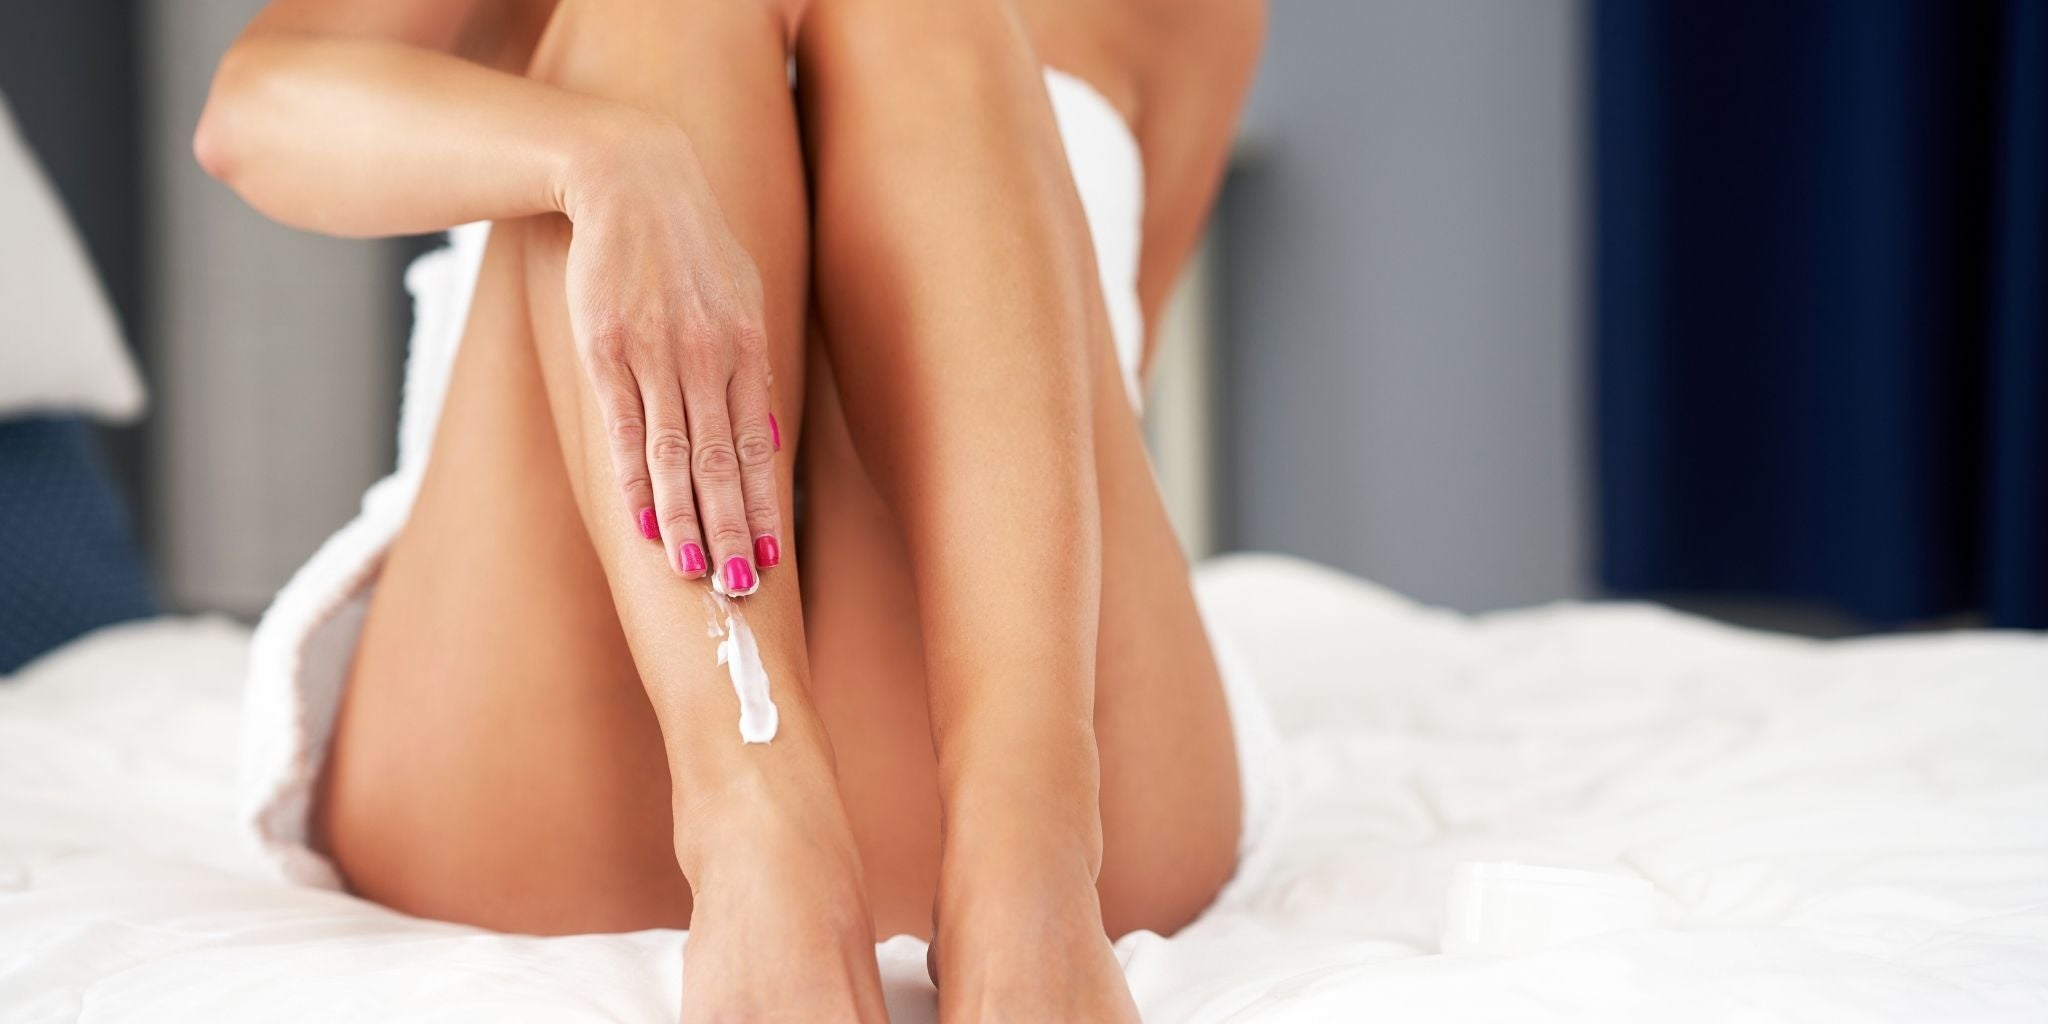 Cetraben Lotion Benefits: Everything You Need to Know